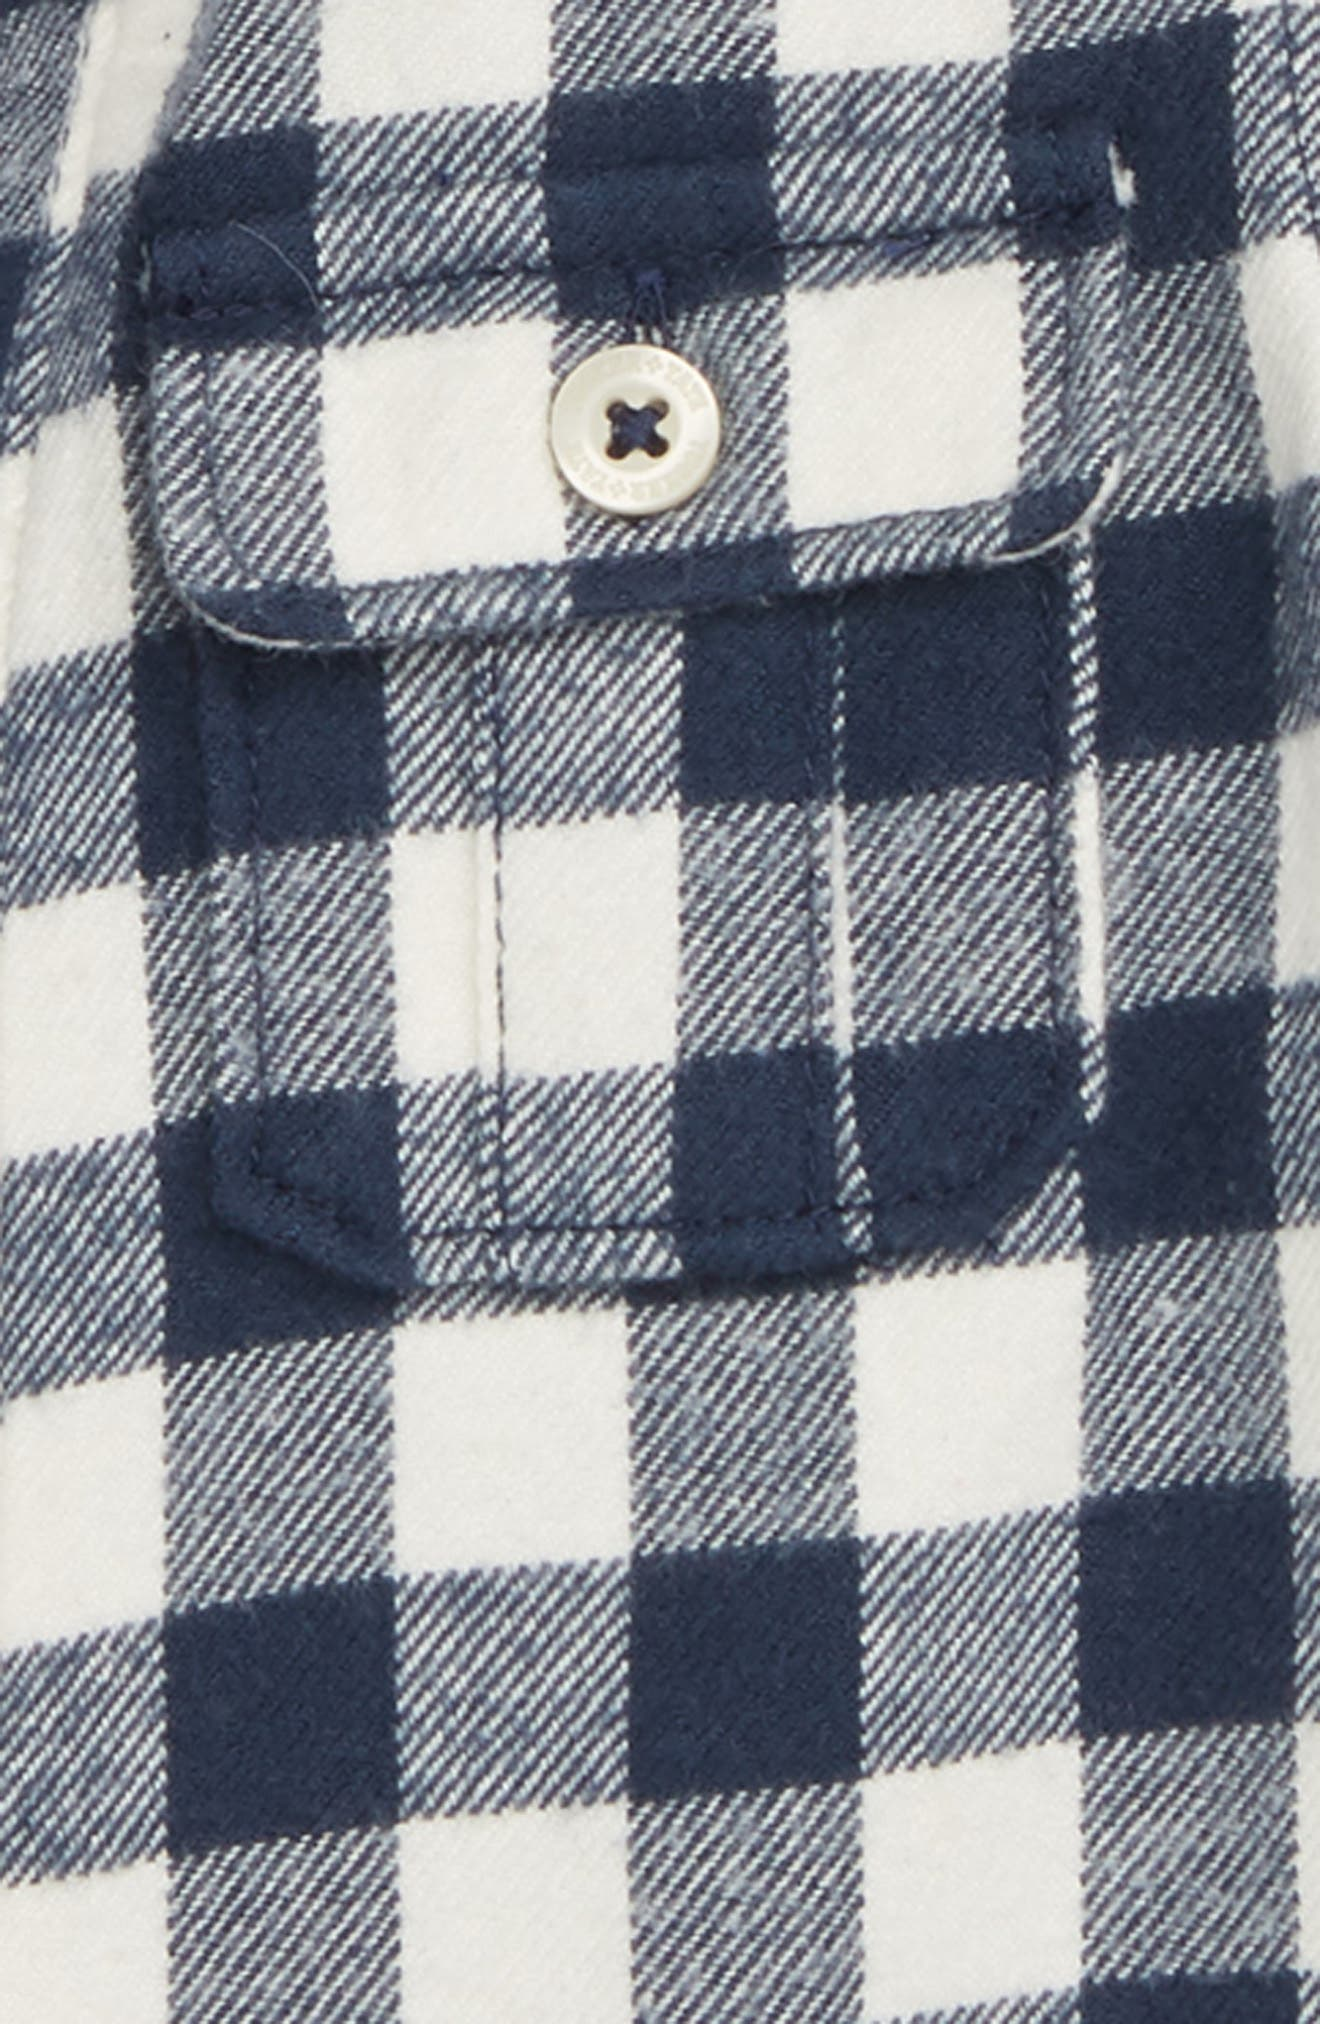 Plaid Hooded Flannel Shirt,                             Alternate thumbnail 2, color,                             410